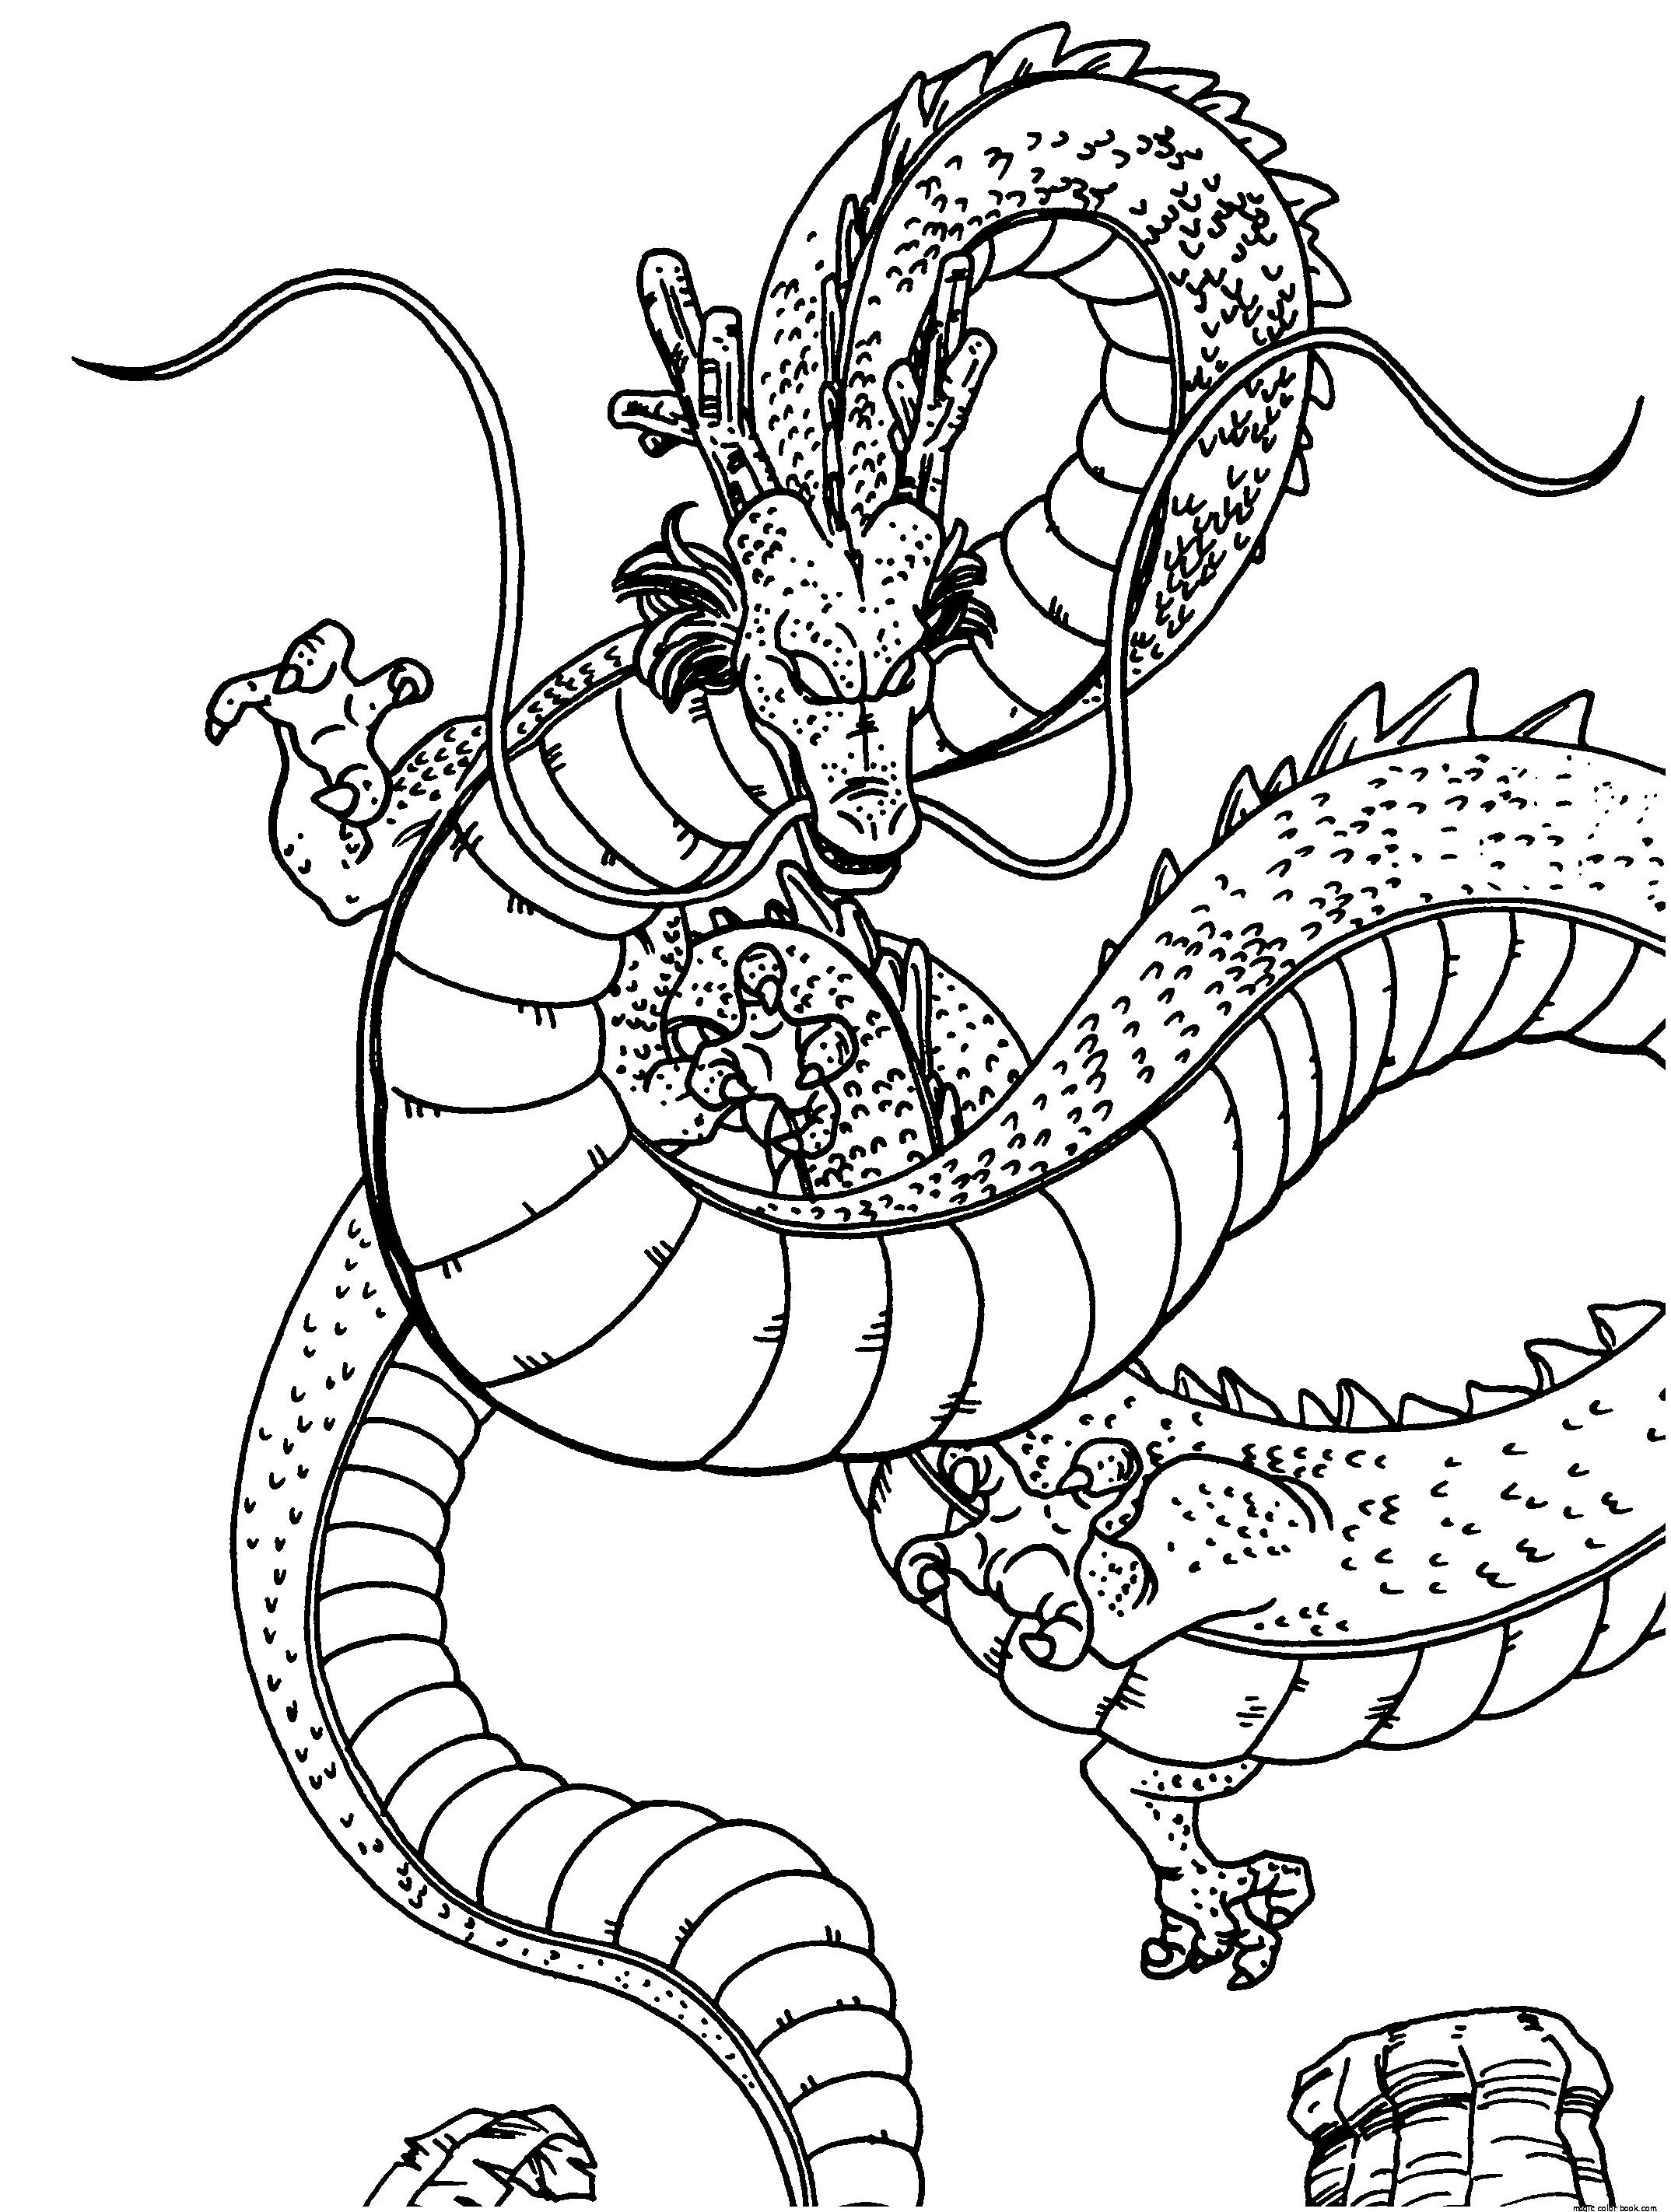 Printable Dragon Ball Z Coloring Pages 31 HD Arilitv Com